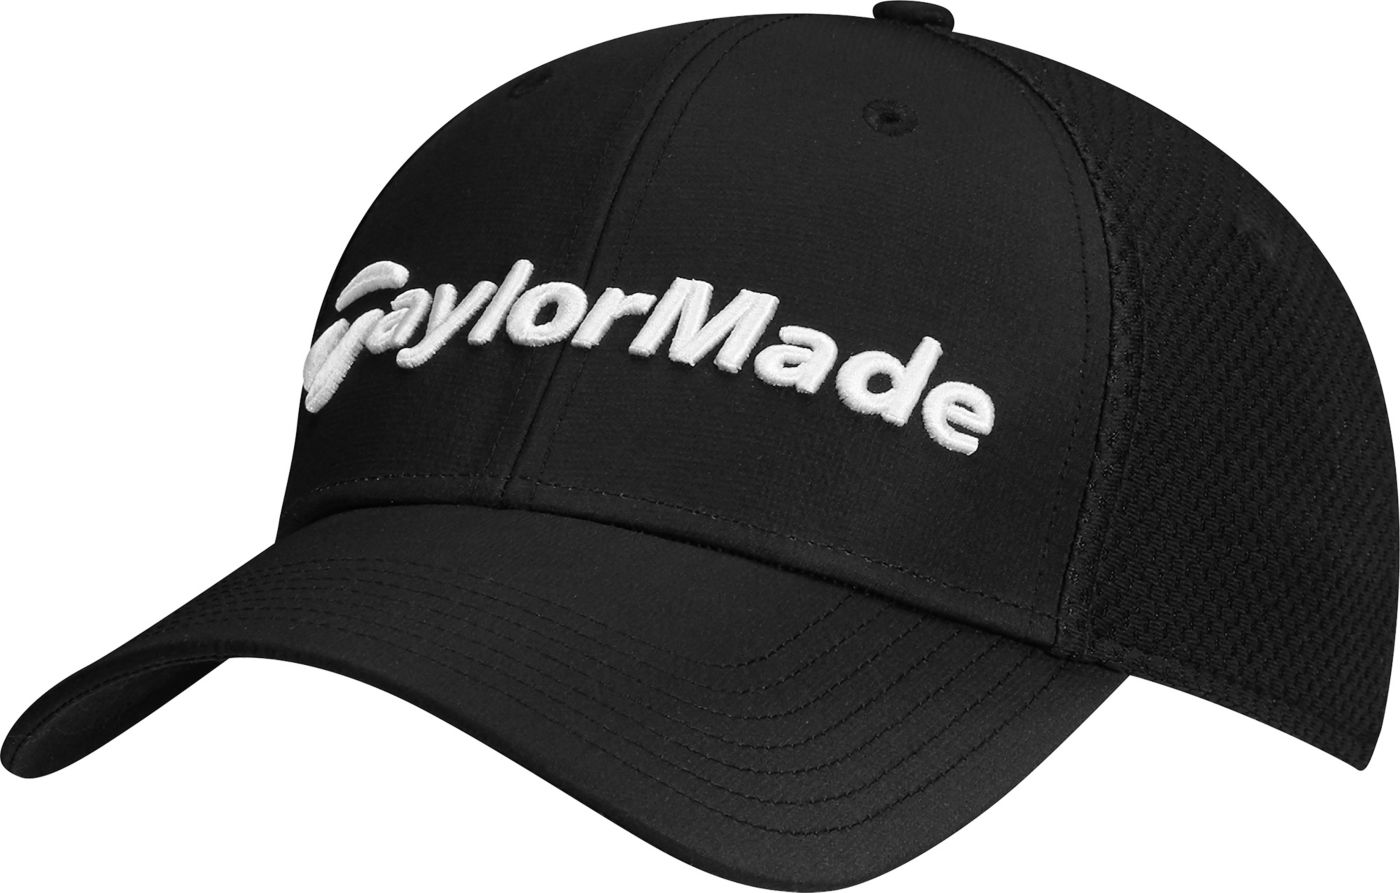 TaylorMade Men's Performance Cage Golf Hat